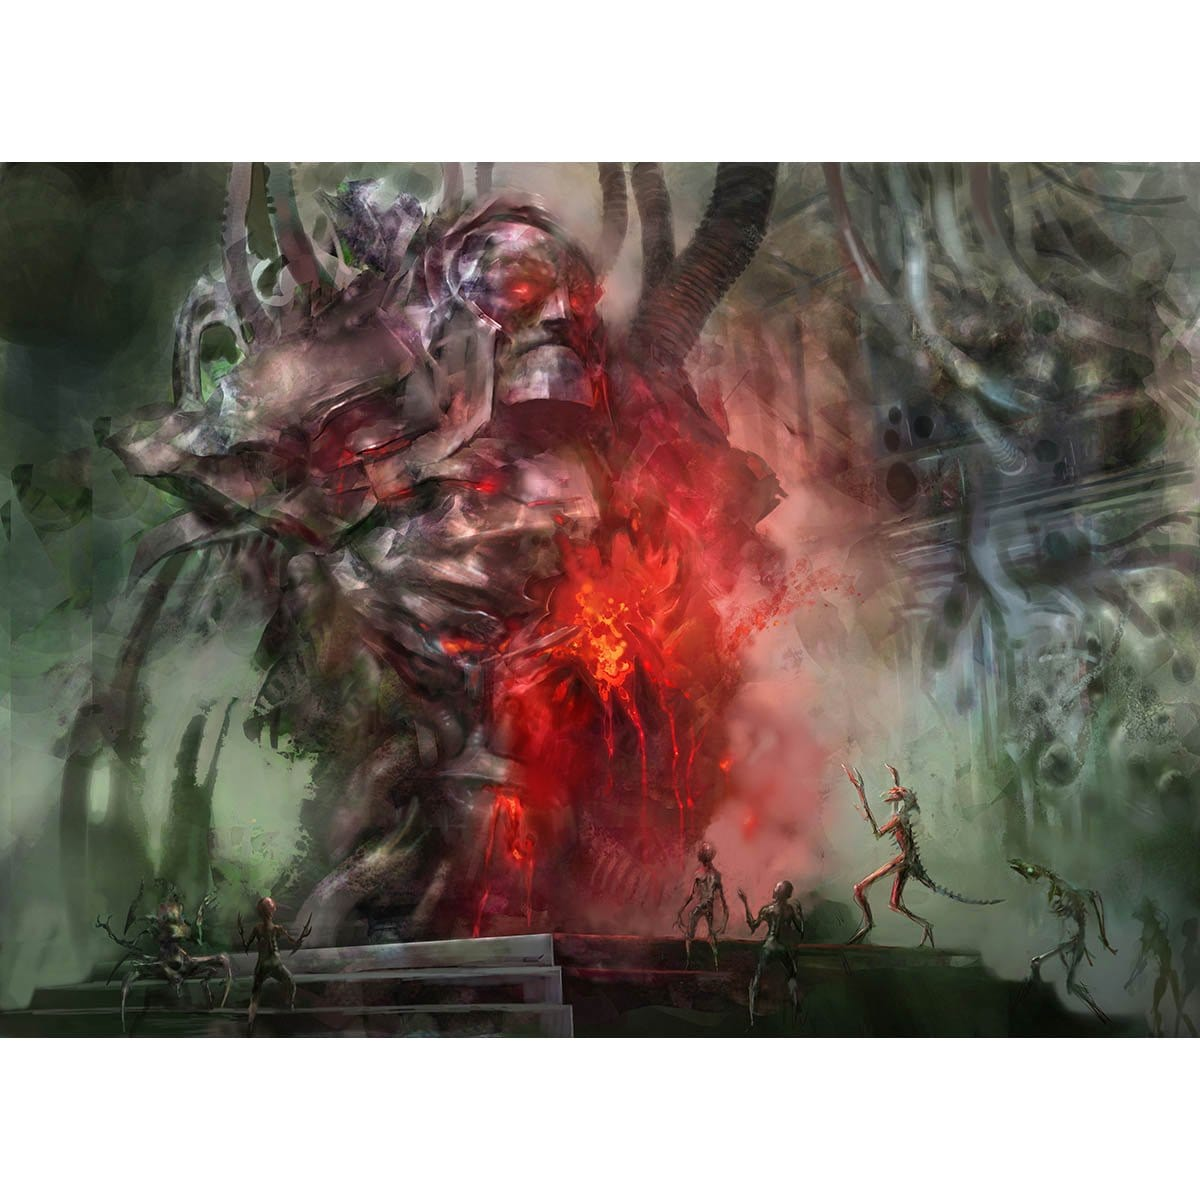 Shrine of Burning Rage Print - Print - Original Magic Art - Accessories for Magic the Gathering and other card games